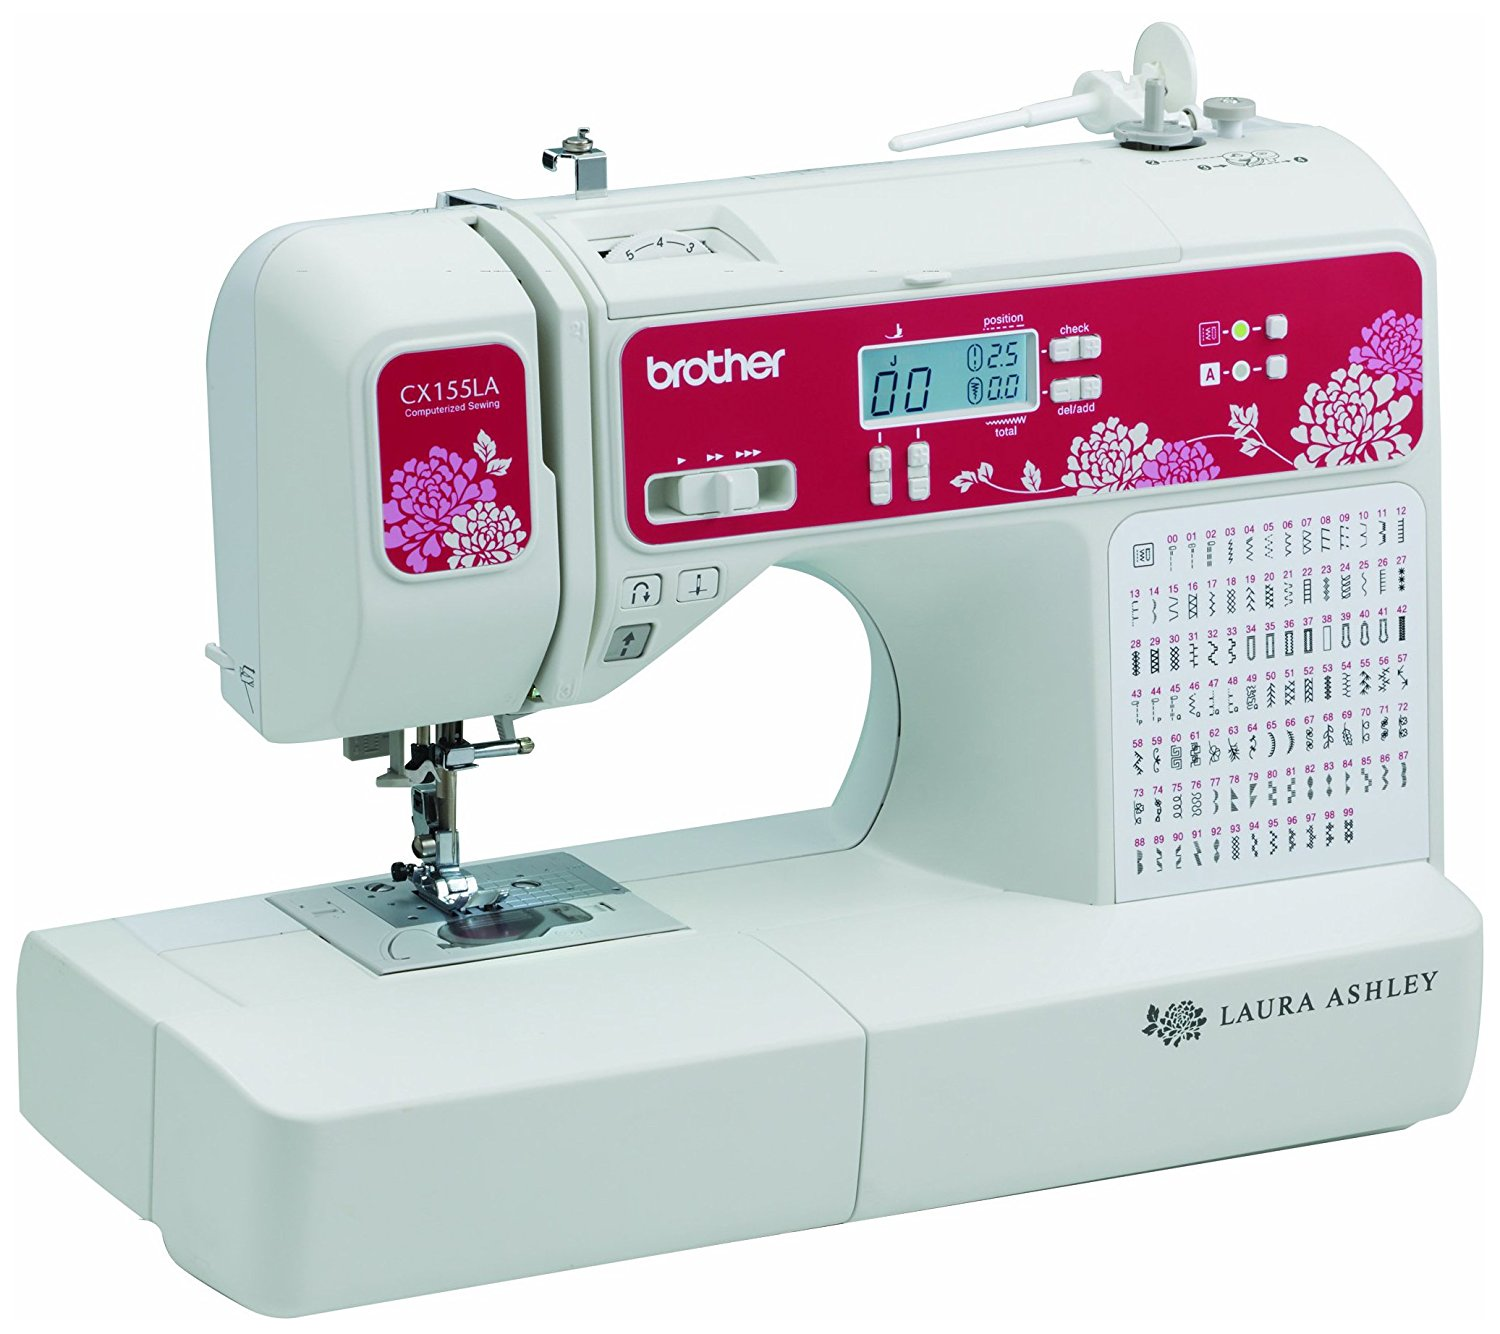 Laura Ashley CX155LA review